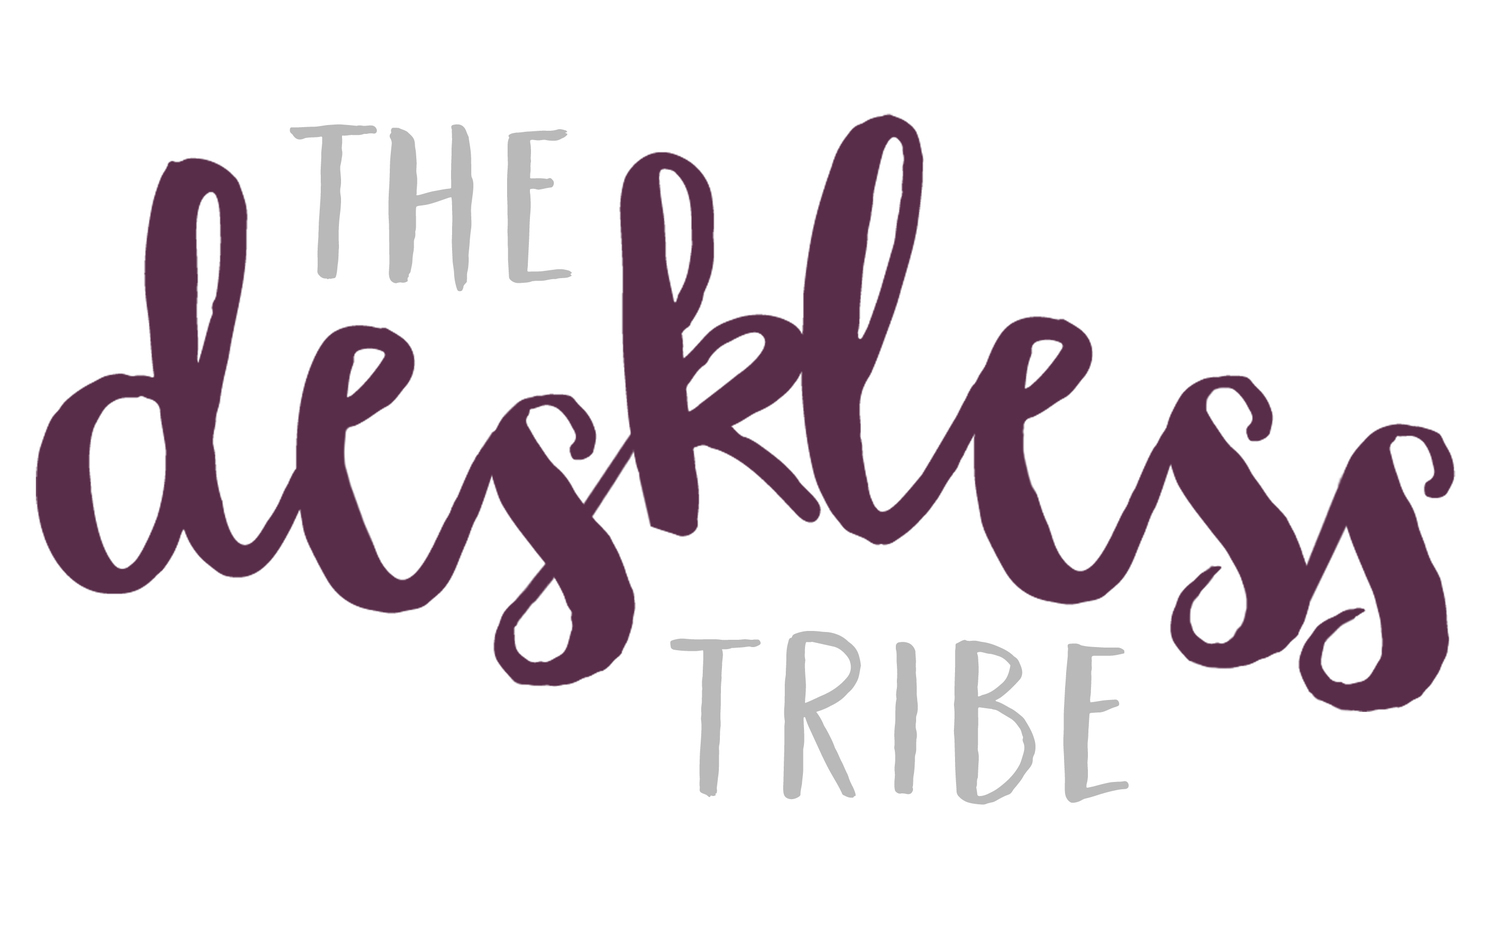 The Deskless Tribe